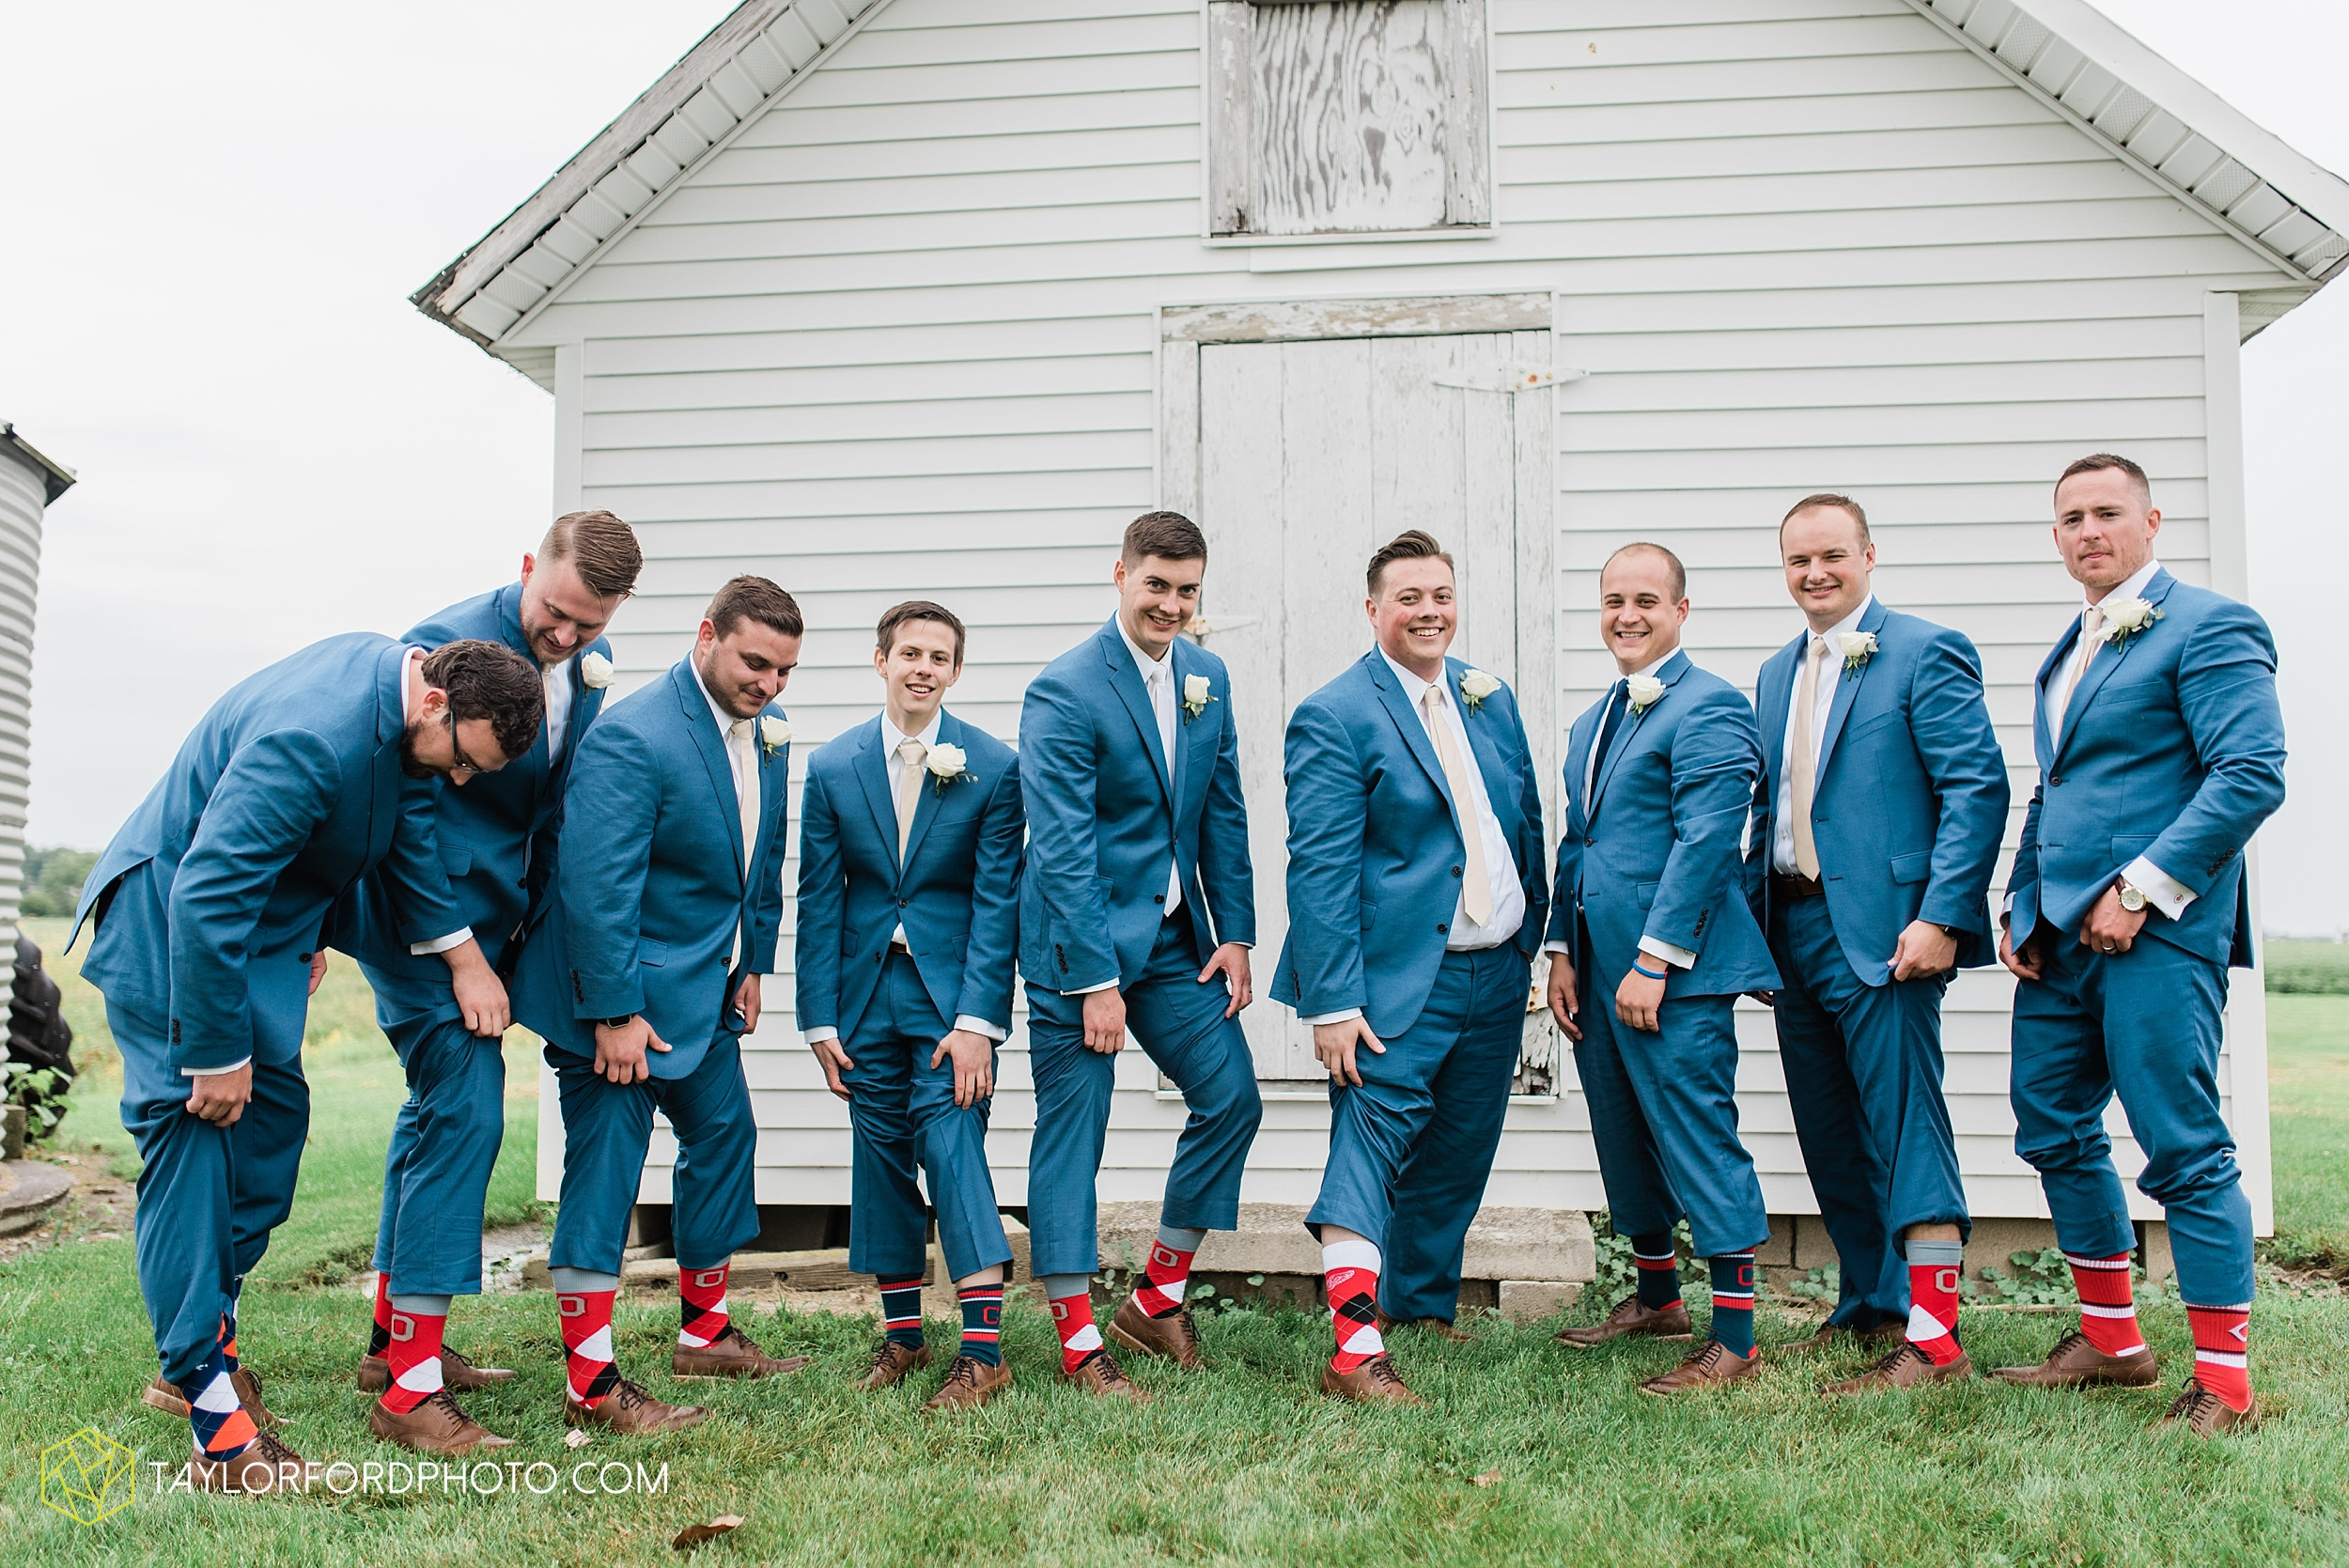 kacee-haden-sholl-second-story-saint-marys-knights-of-columbus-defiance-ohio-wedding-photographer-taylor-ford-photography_0172.jpg